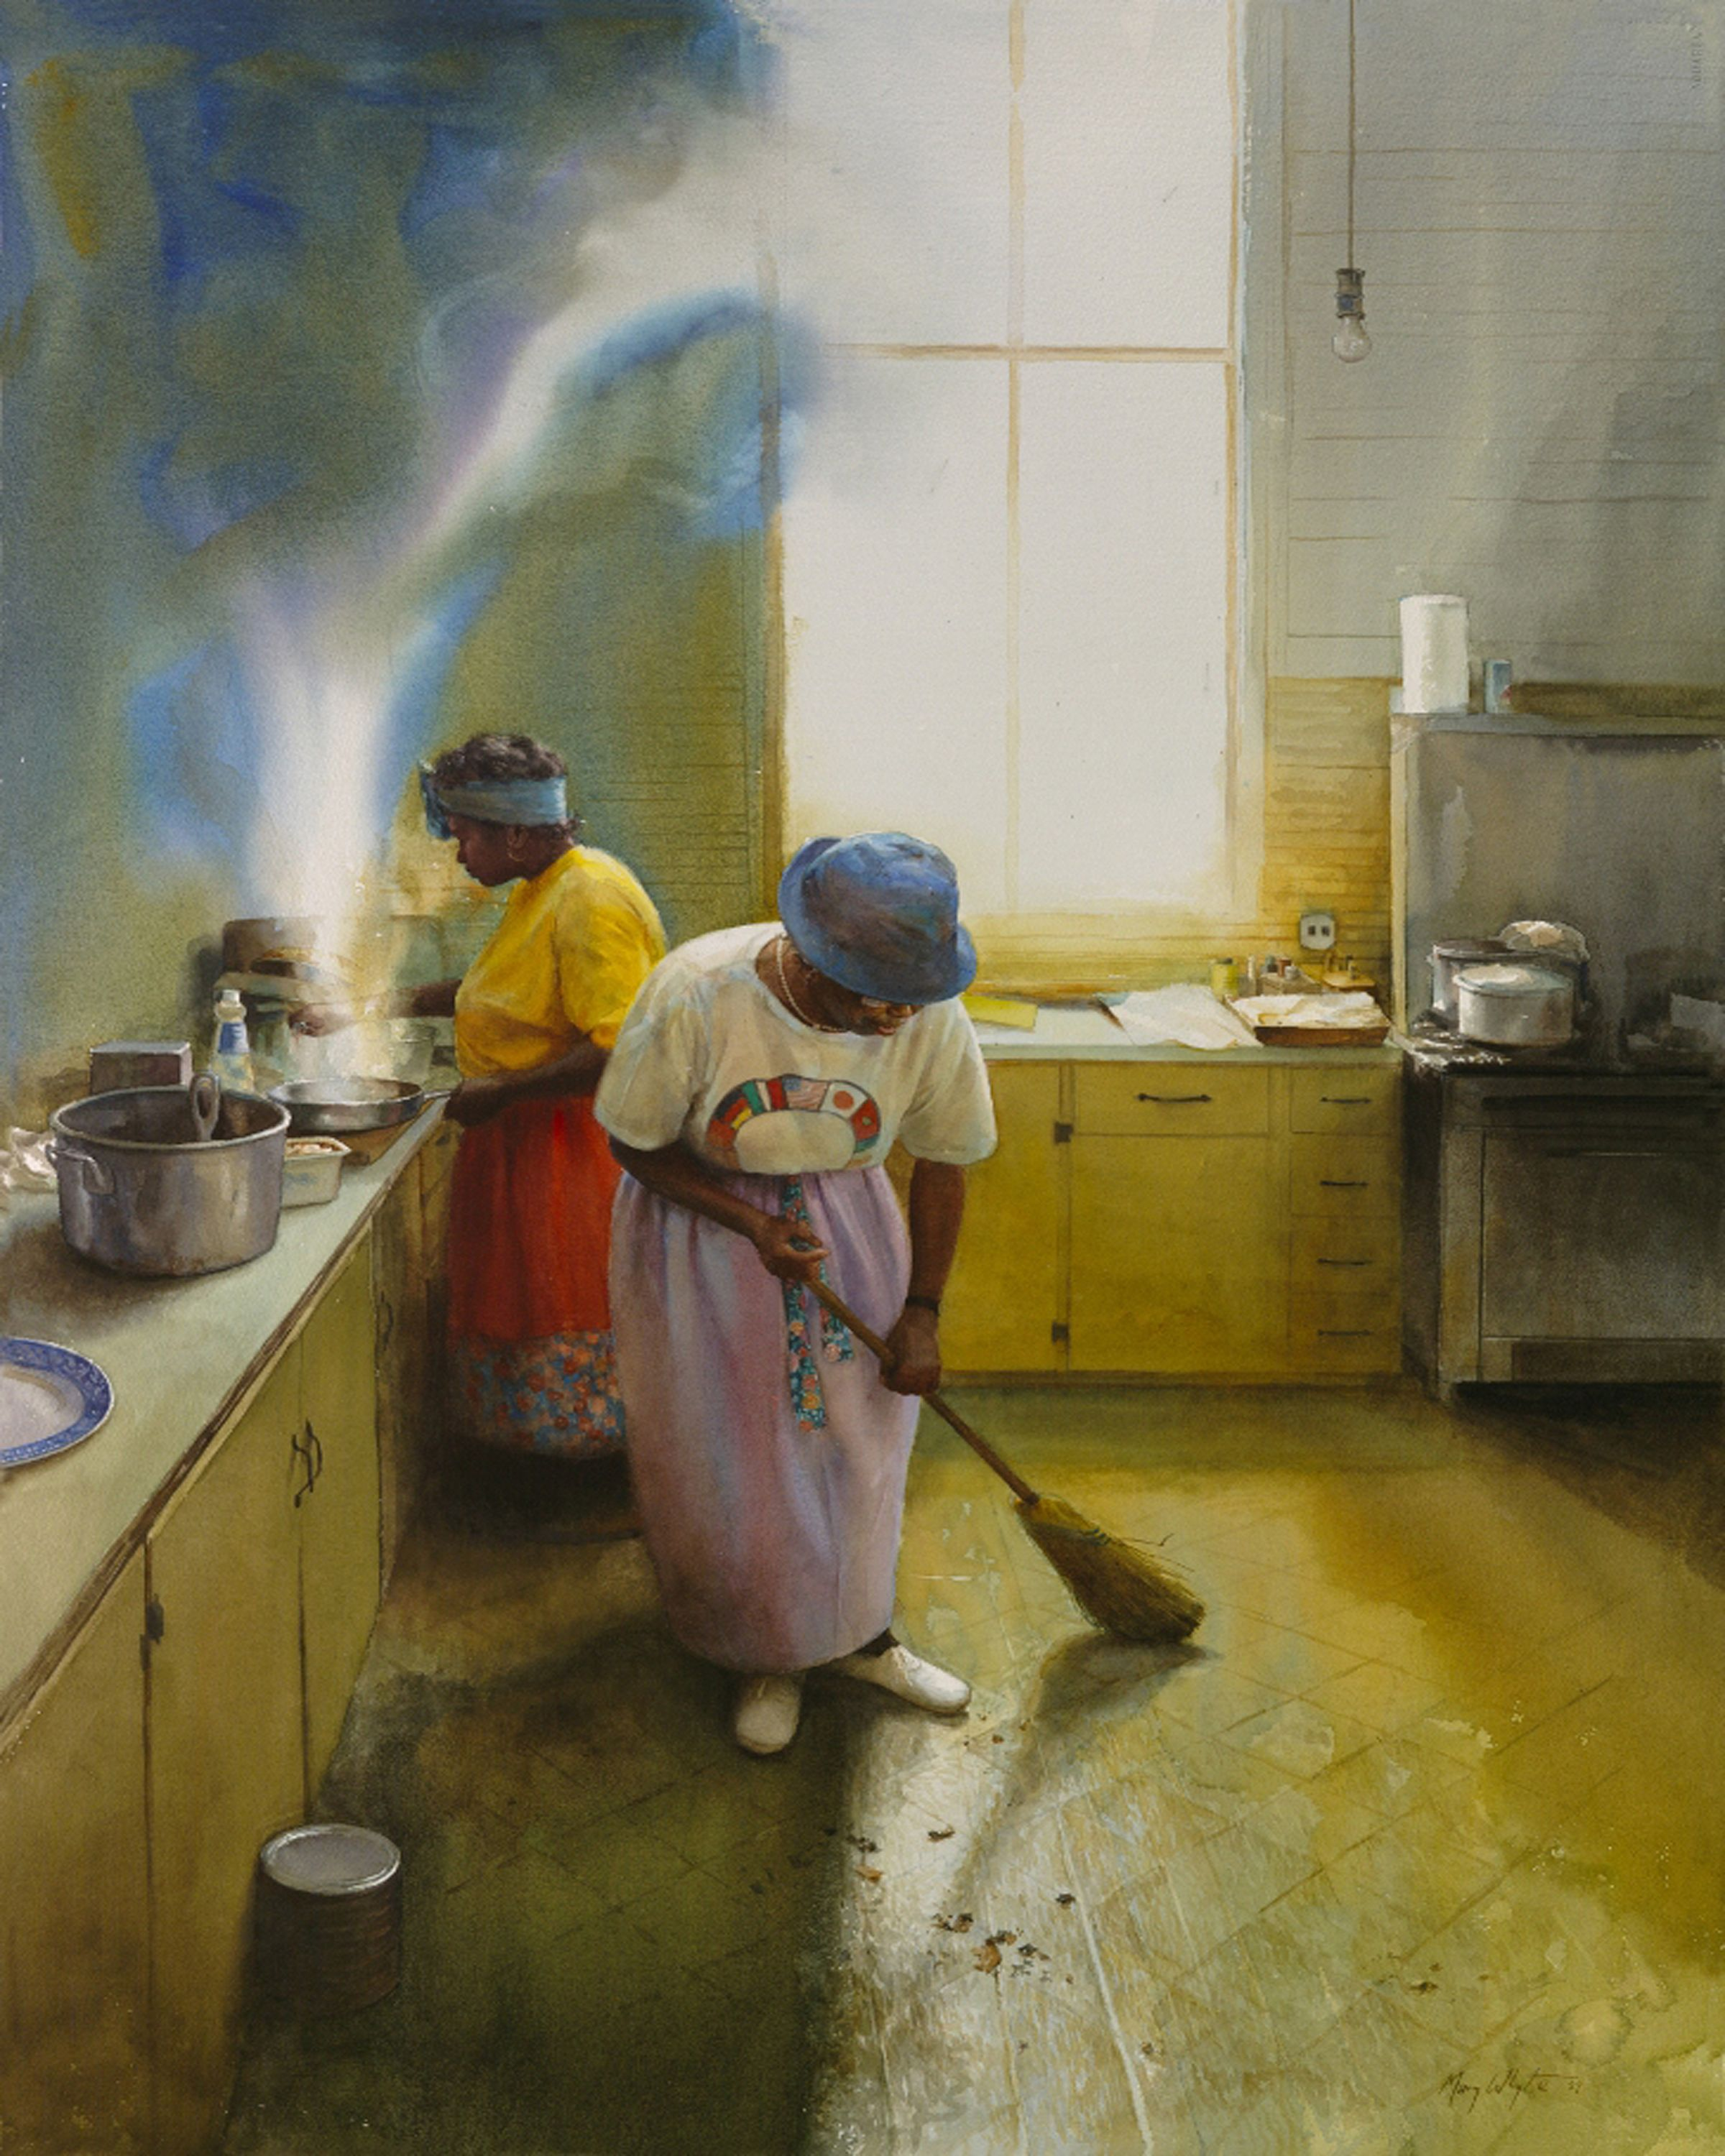 Watercolor books by mary whyte -  Wednesday Chores Watercolor On Paper 2004 By Mary Whyte